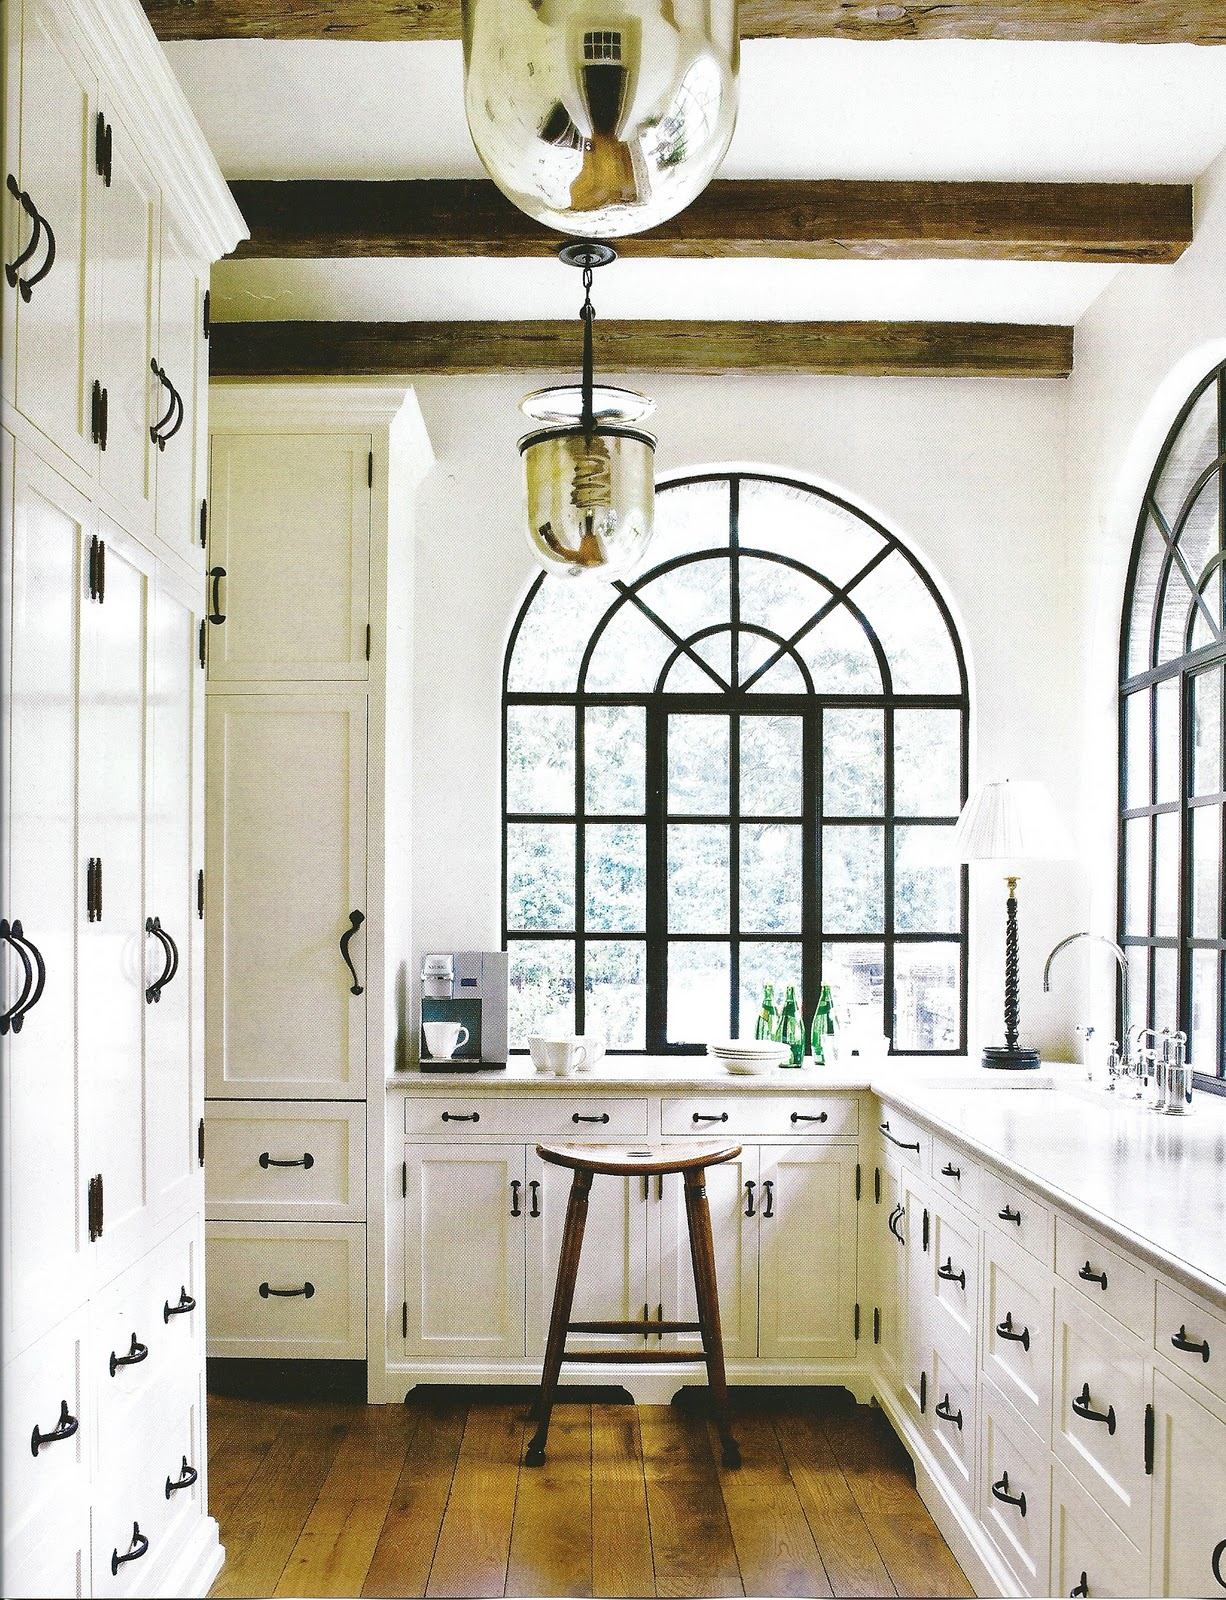 Most Excellent White Kitchen Cabinets with Black Hardware 1226 x 1600 · 674 kB · jpeg